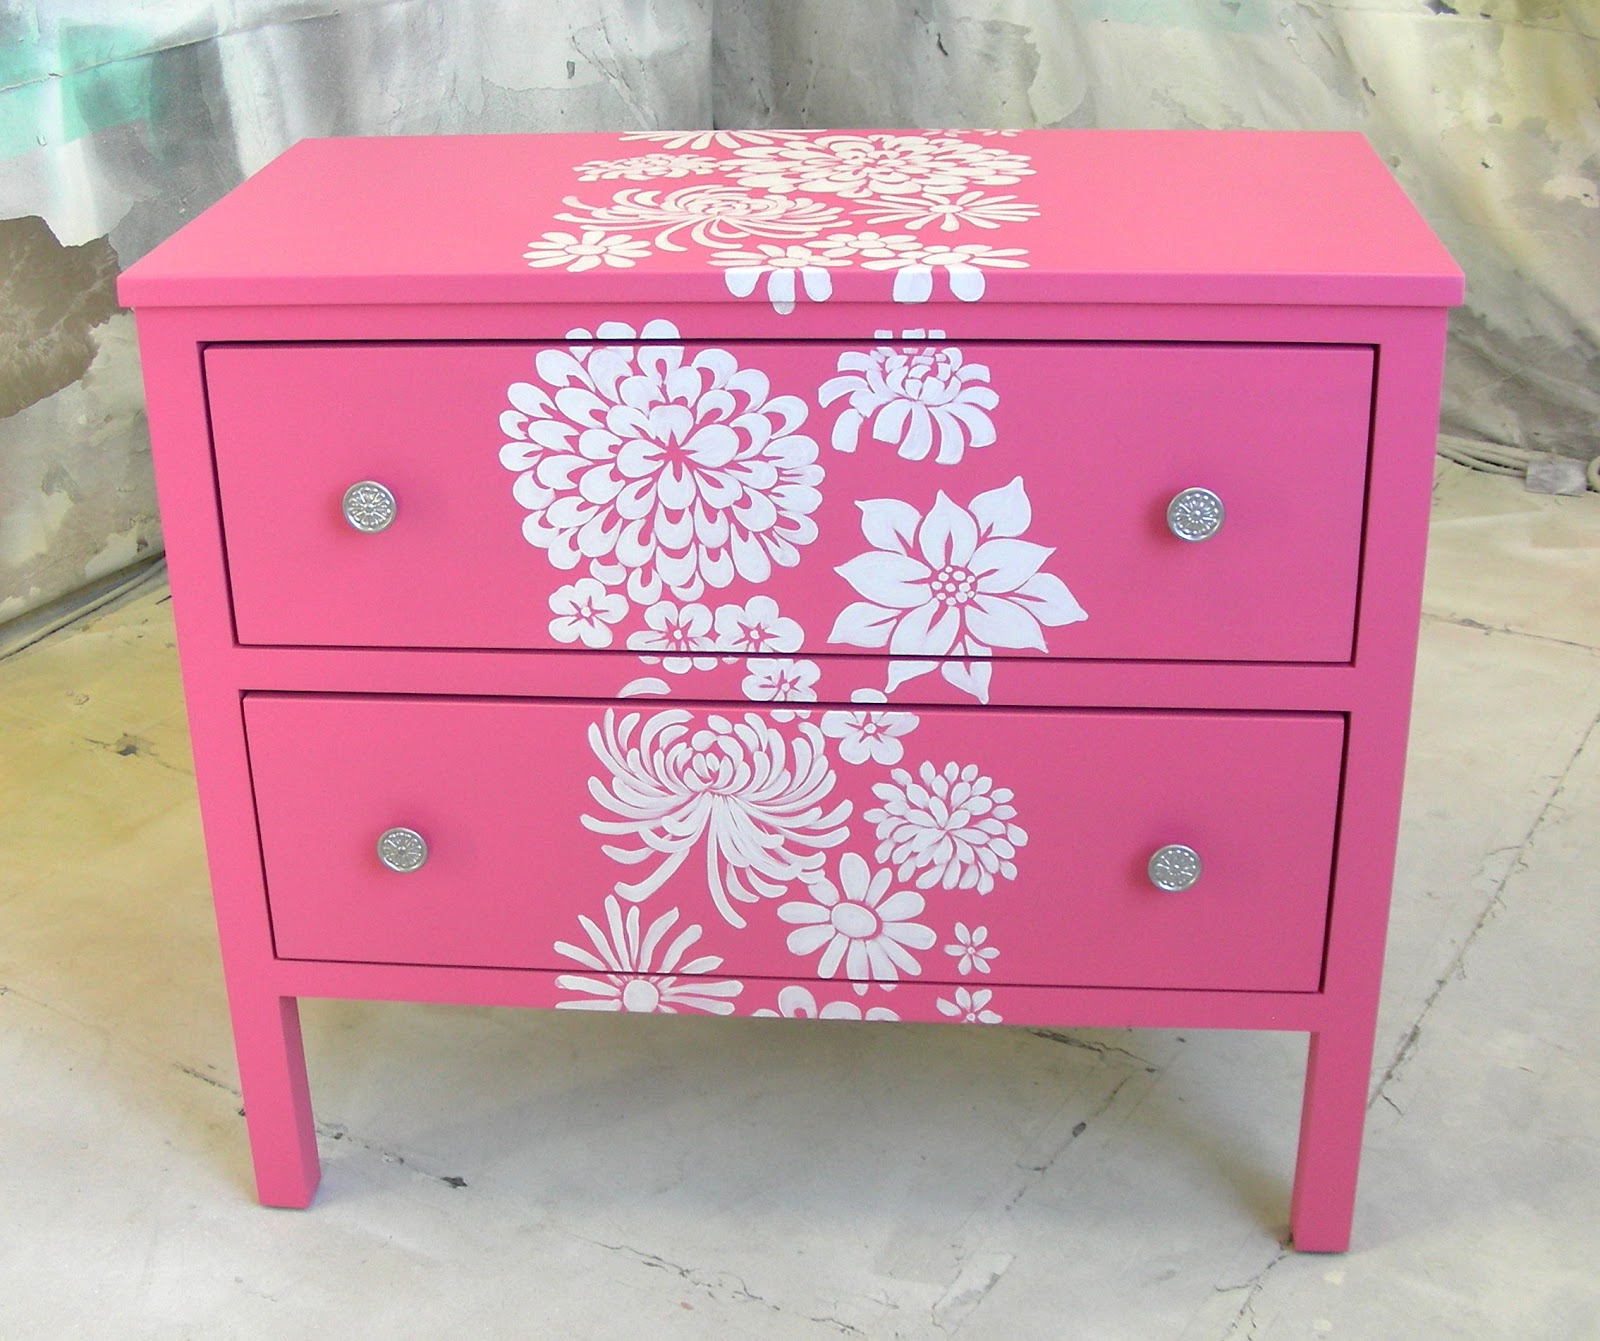 Sydney barton painted furniture pink nightstand with - Paint stencils for furniture ...